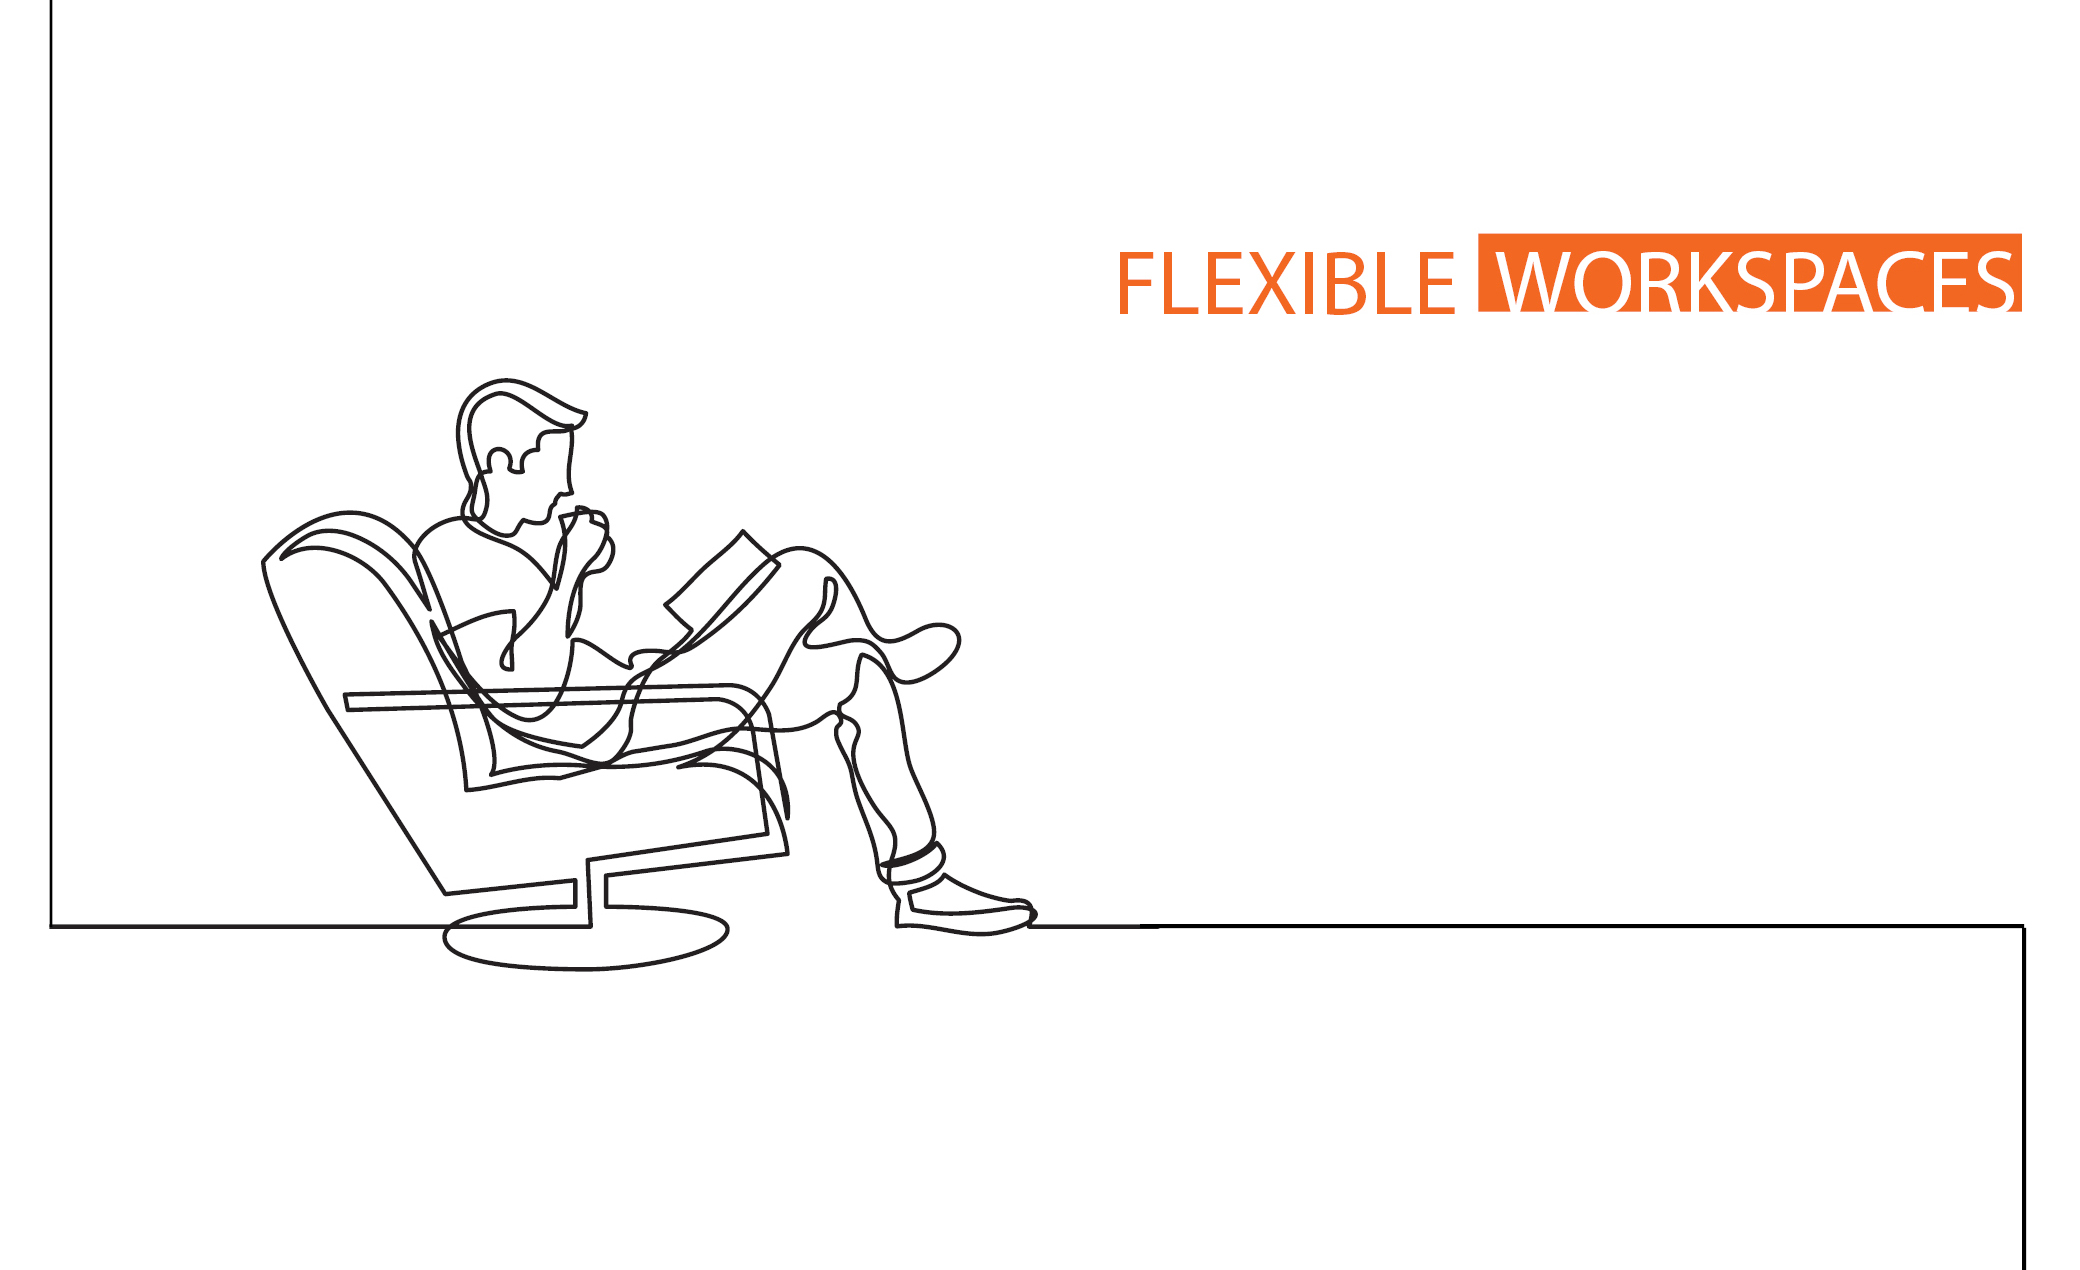 Office considerations infographic - flexible workspaces.jpg